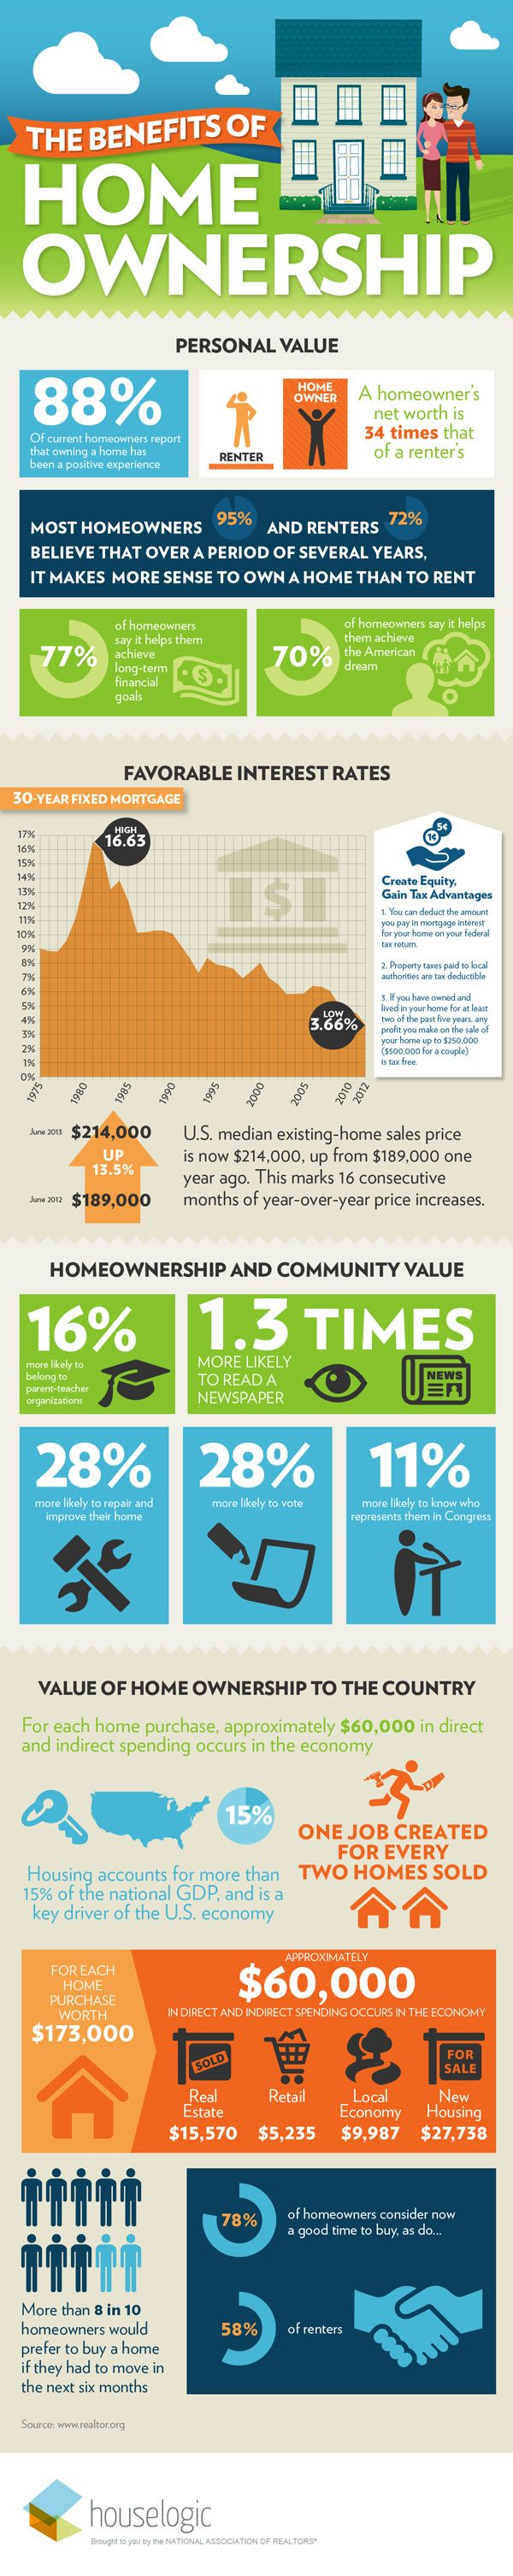 benefits of home ownership infographic